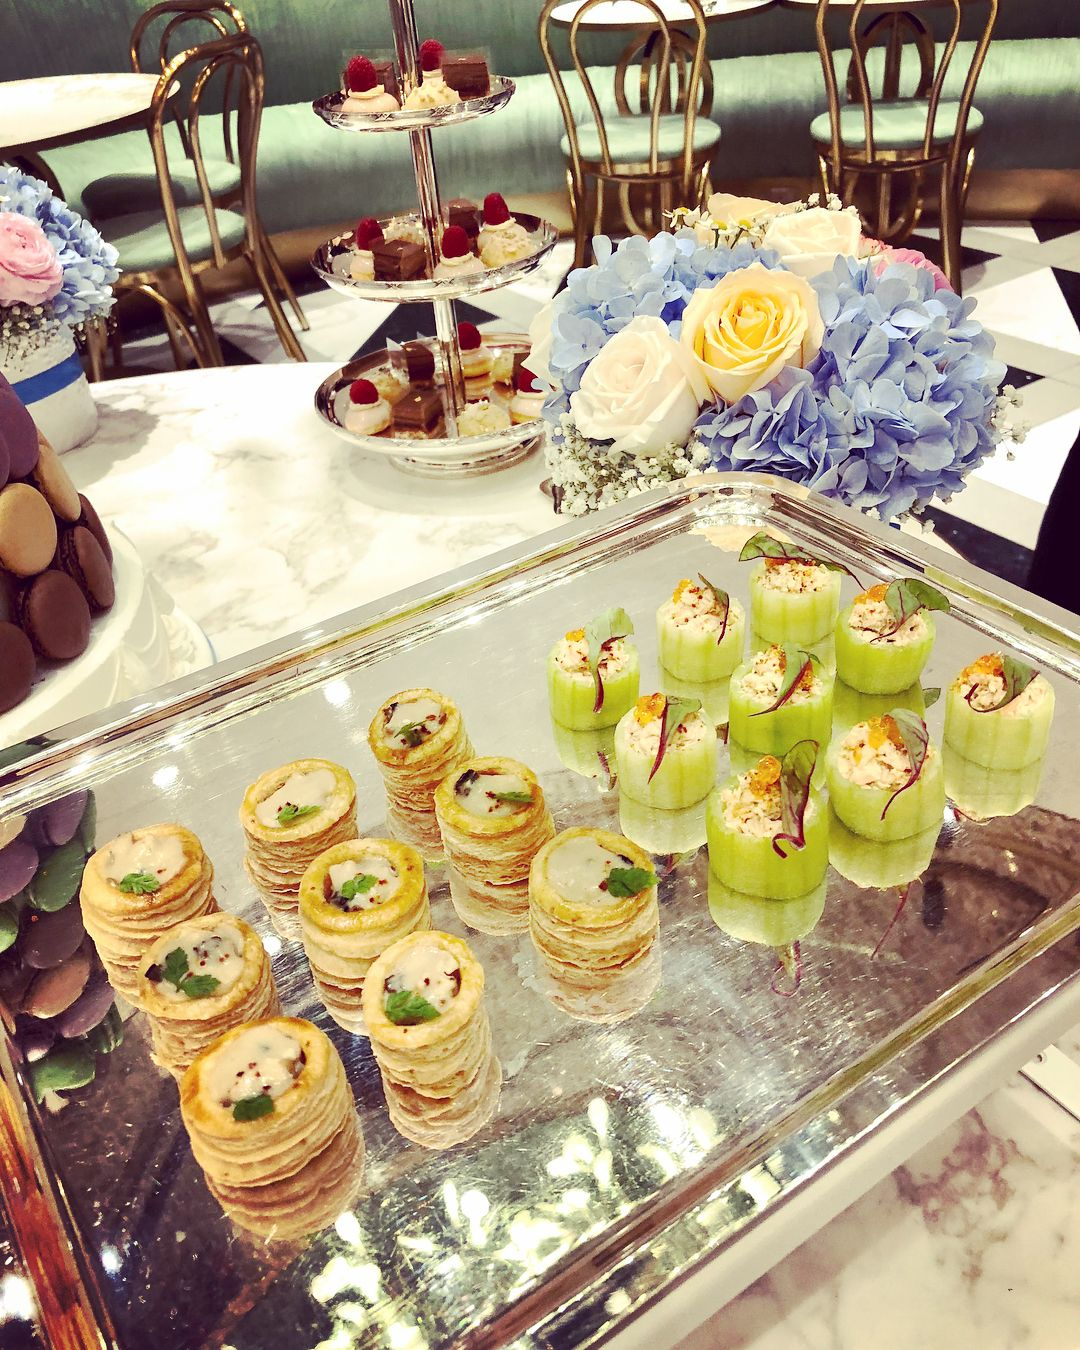 Dainty canapes that kept the party buzzing all morning (Photo: @yiulin)